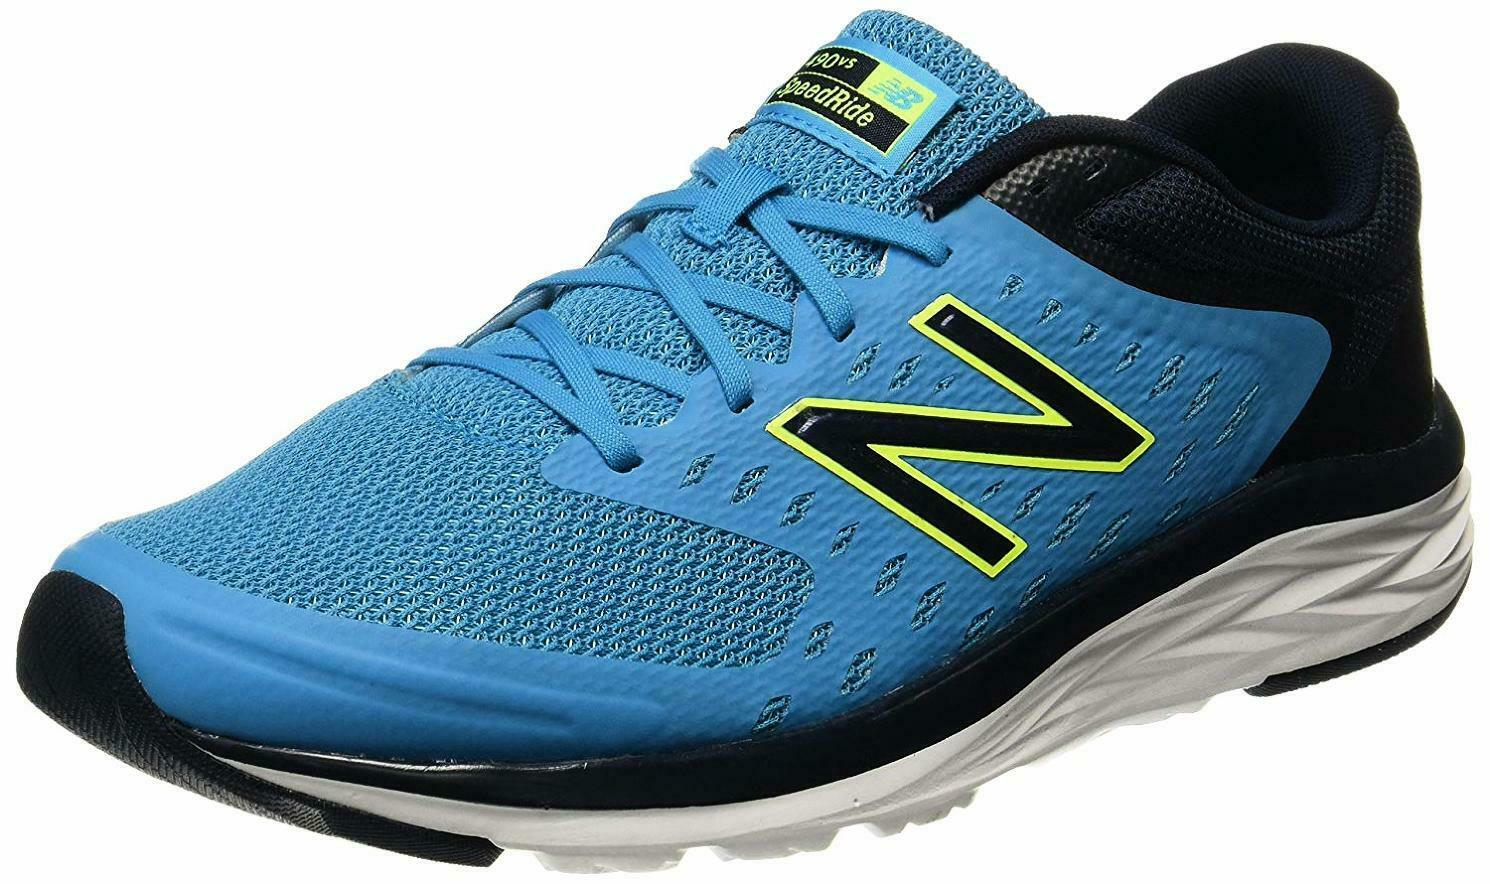 New Balance Men's 490v5 Running shoes - Choose SZ color